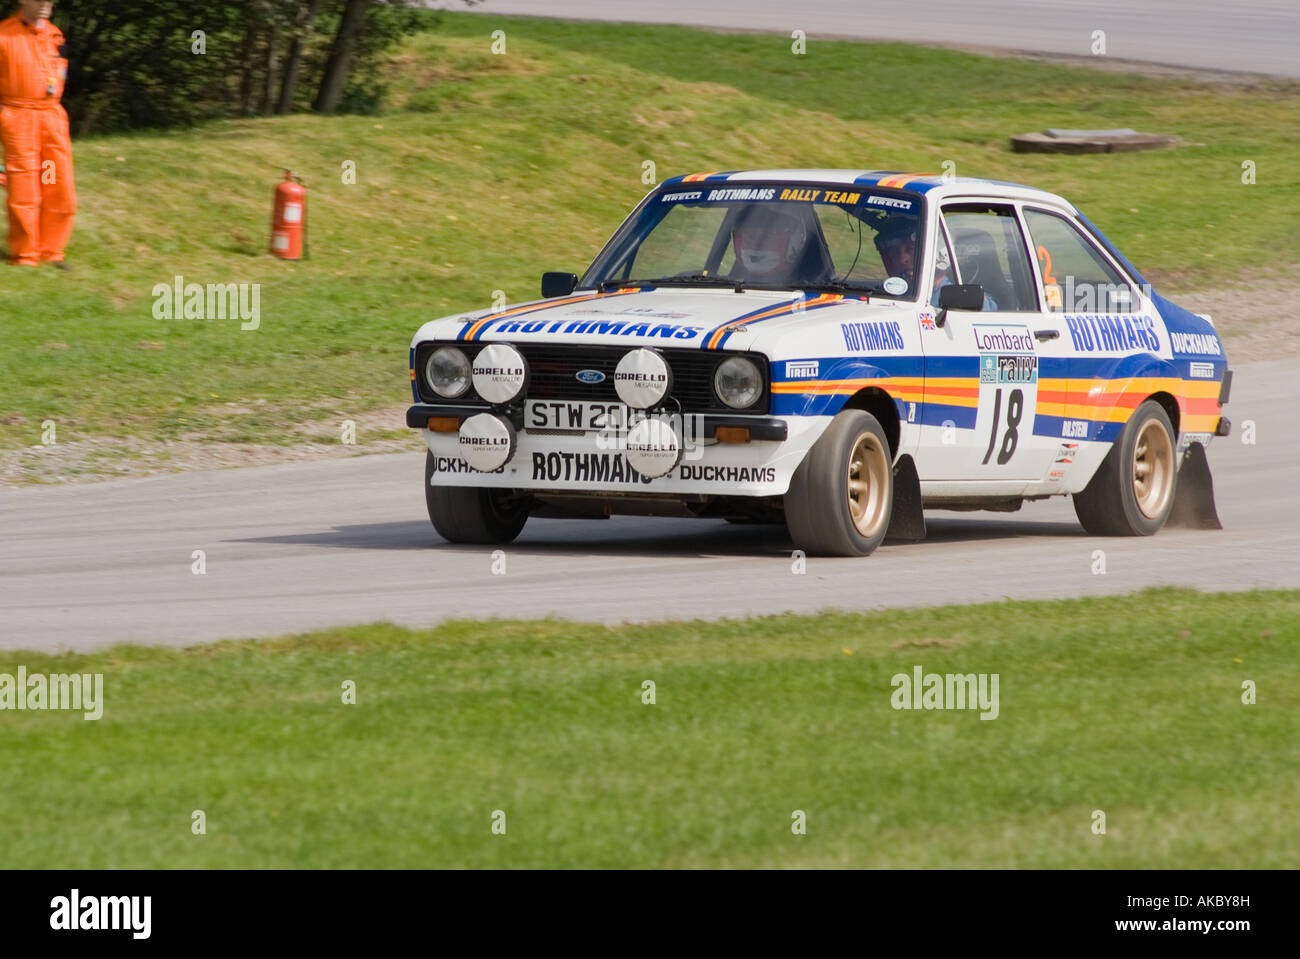 Ford Escort Mk2 Rally Car at Oulton Park Motor Racing Circuit near ...